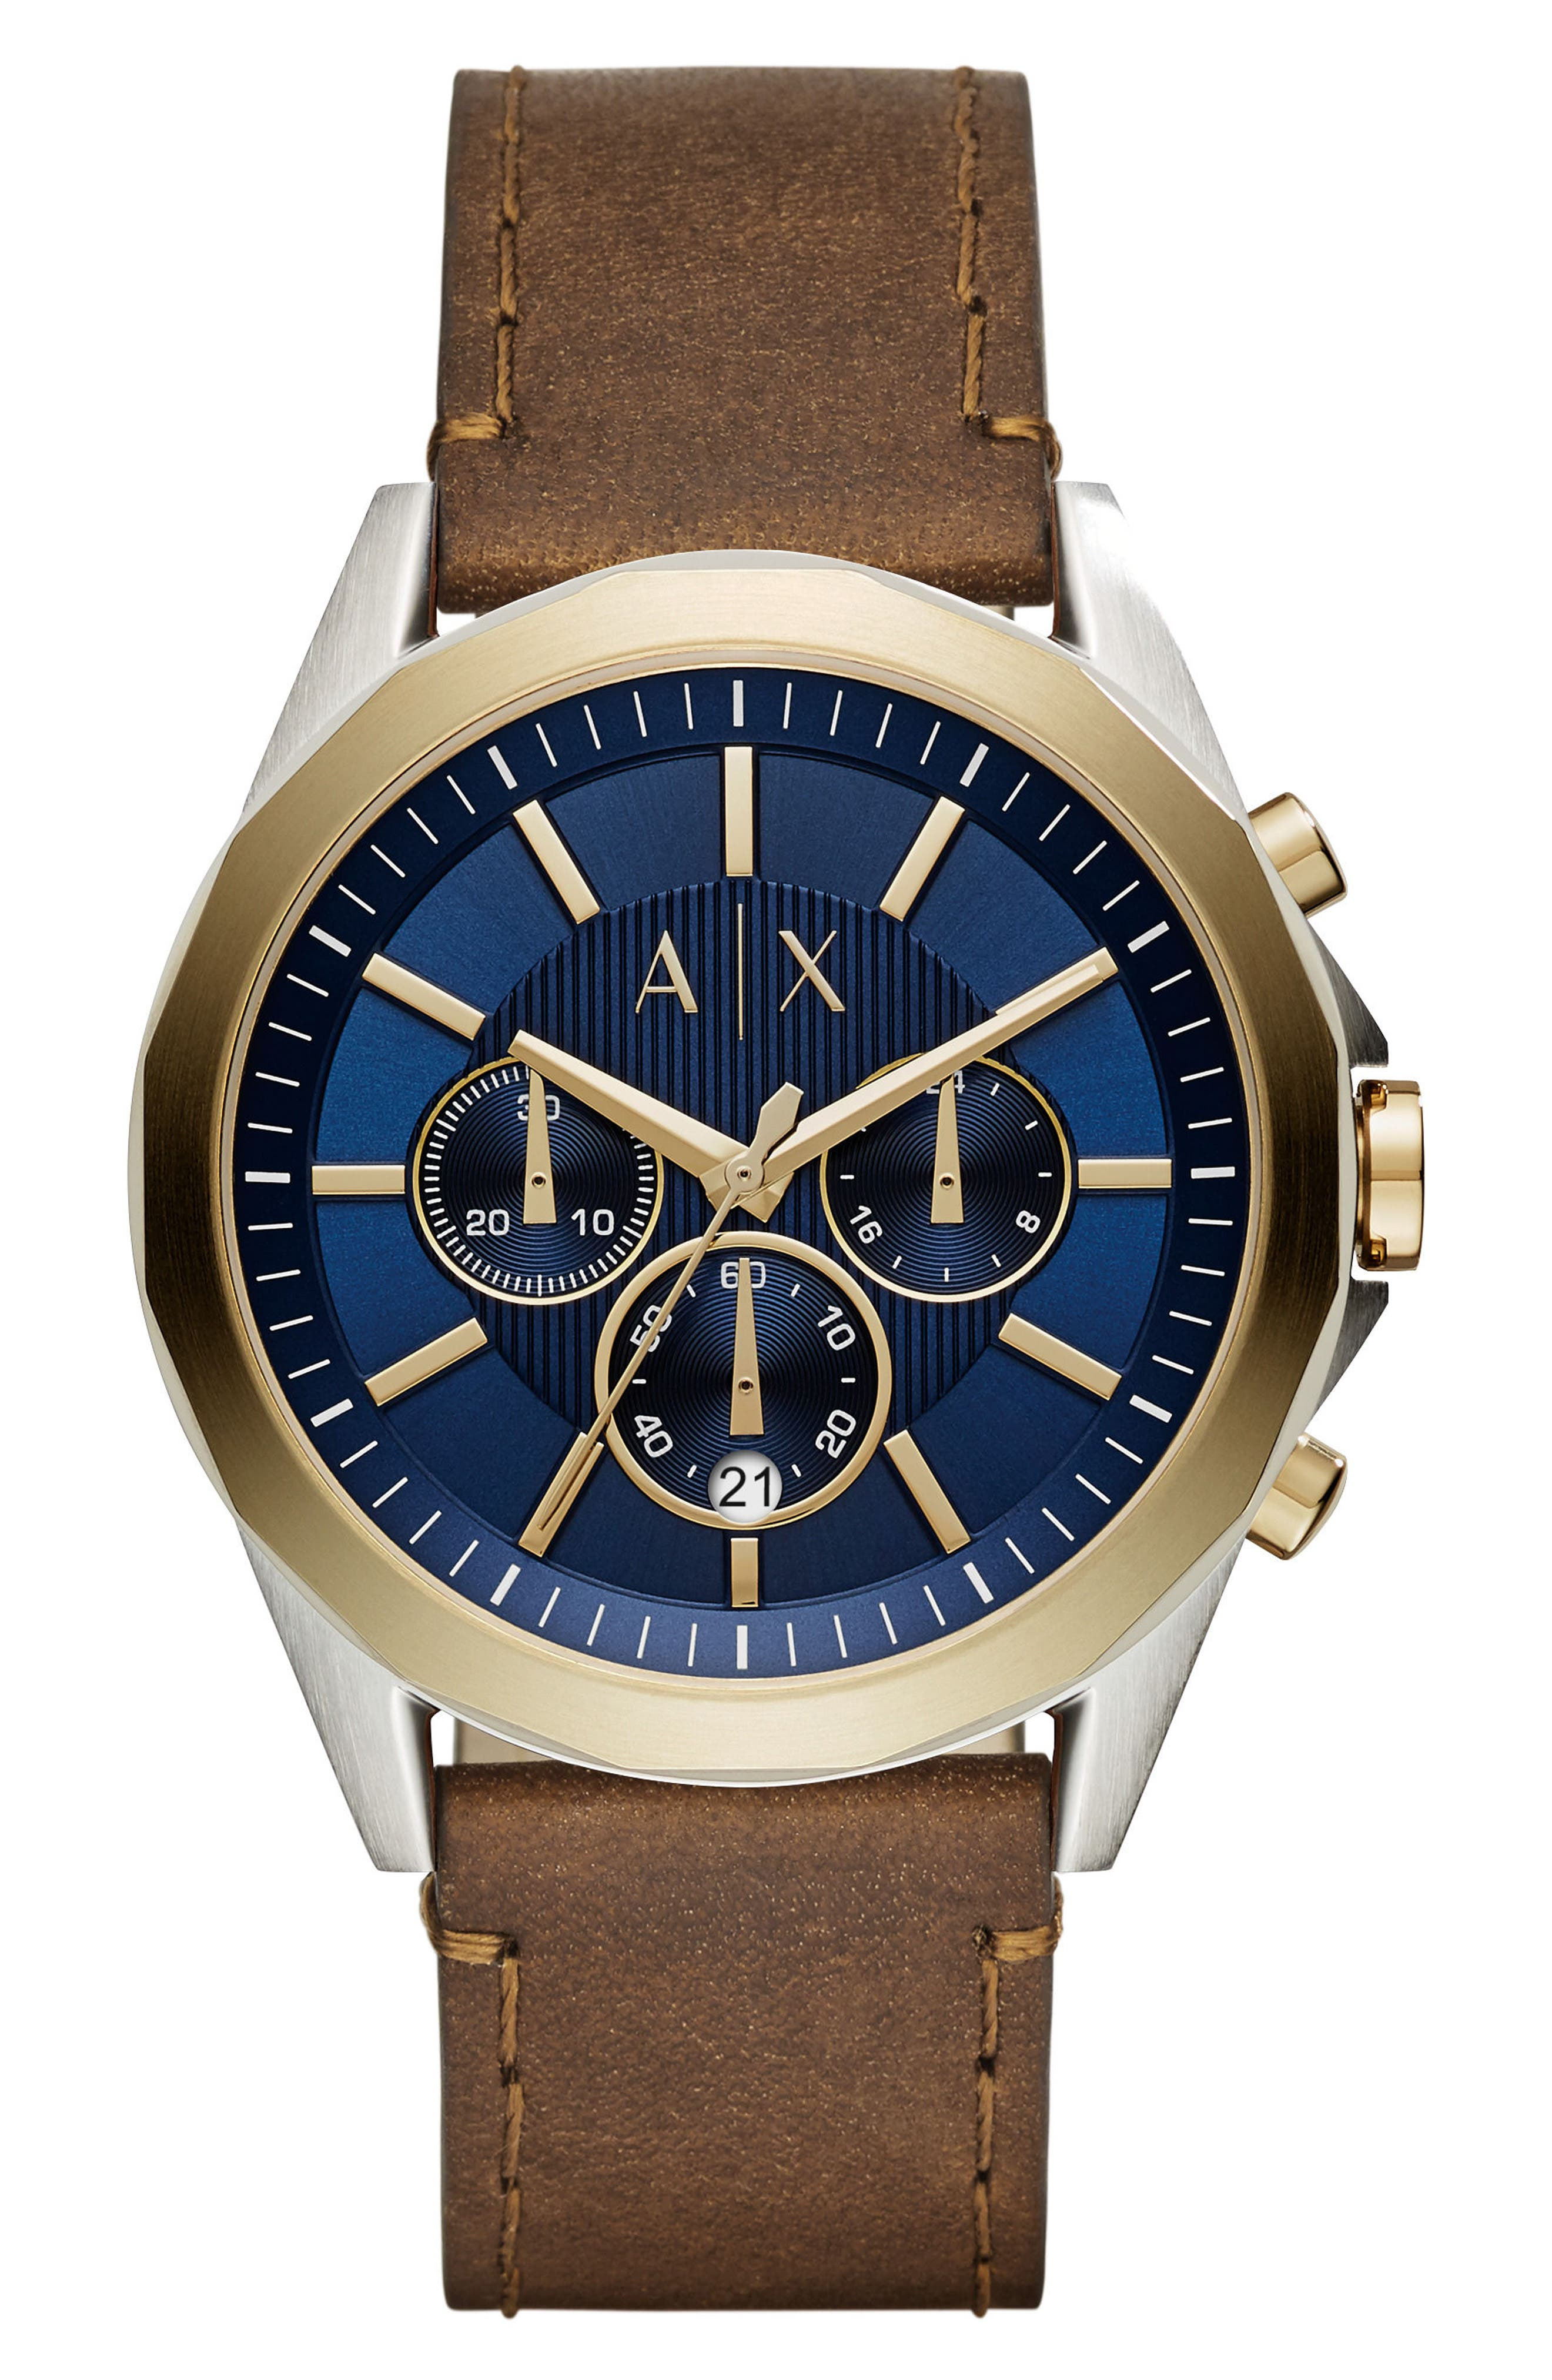 AX ARMANI EXCHANGE Chronograph Leather Strap Watch, 46mm, Main, color, 200